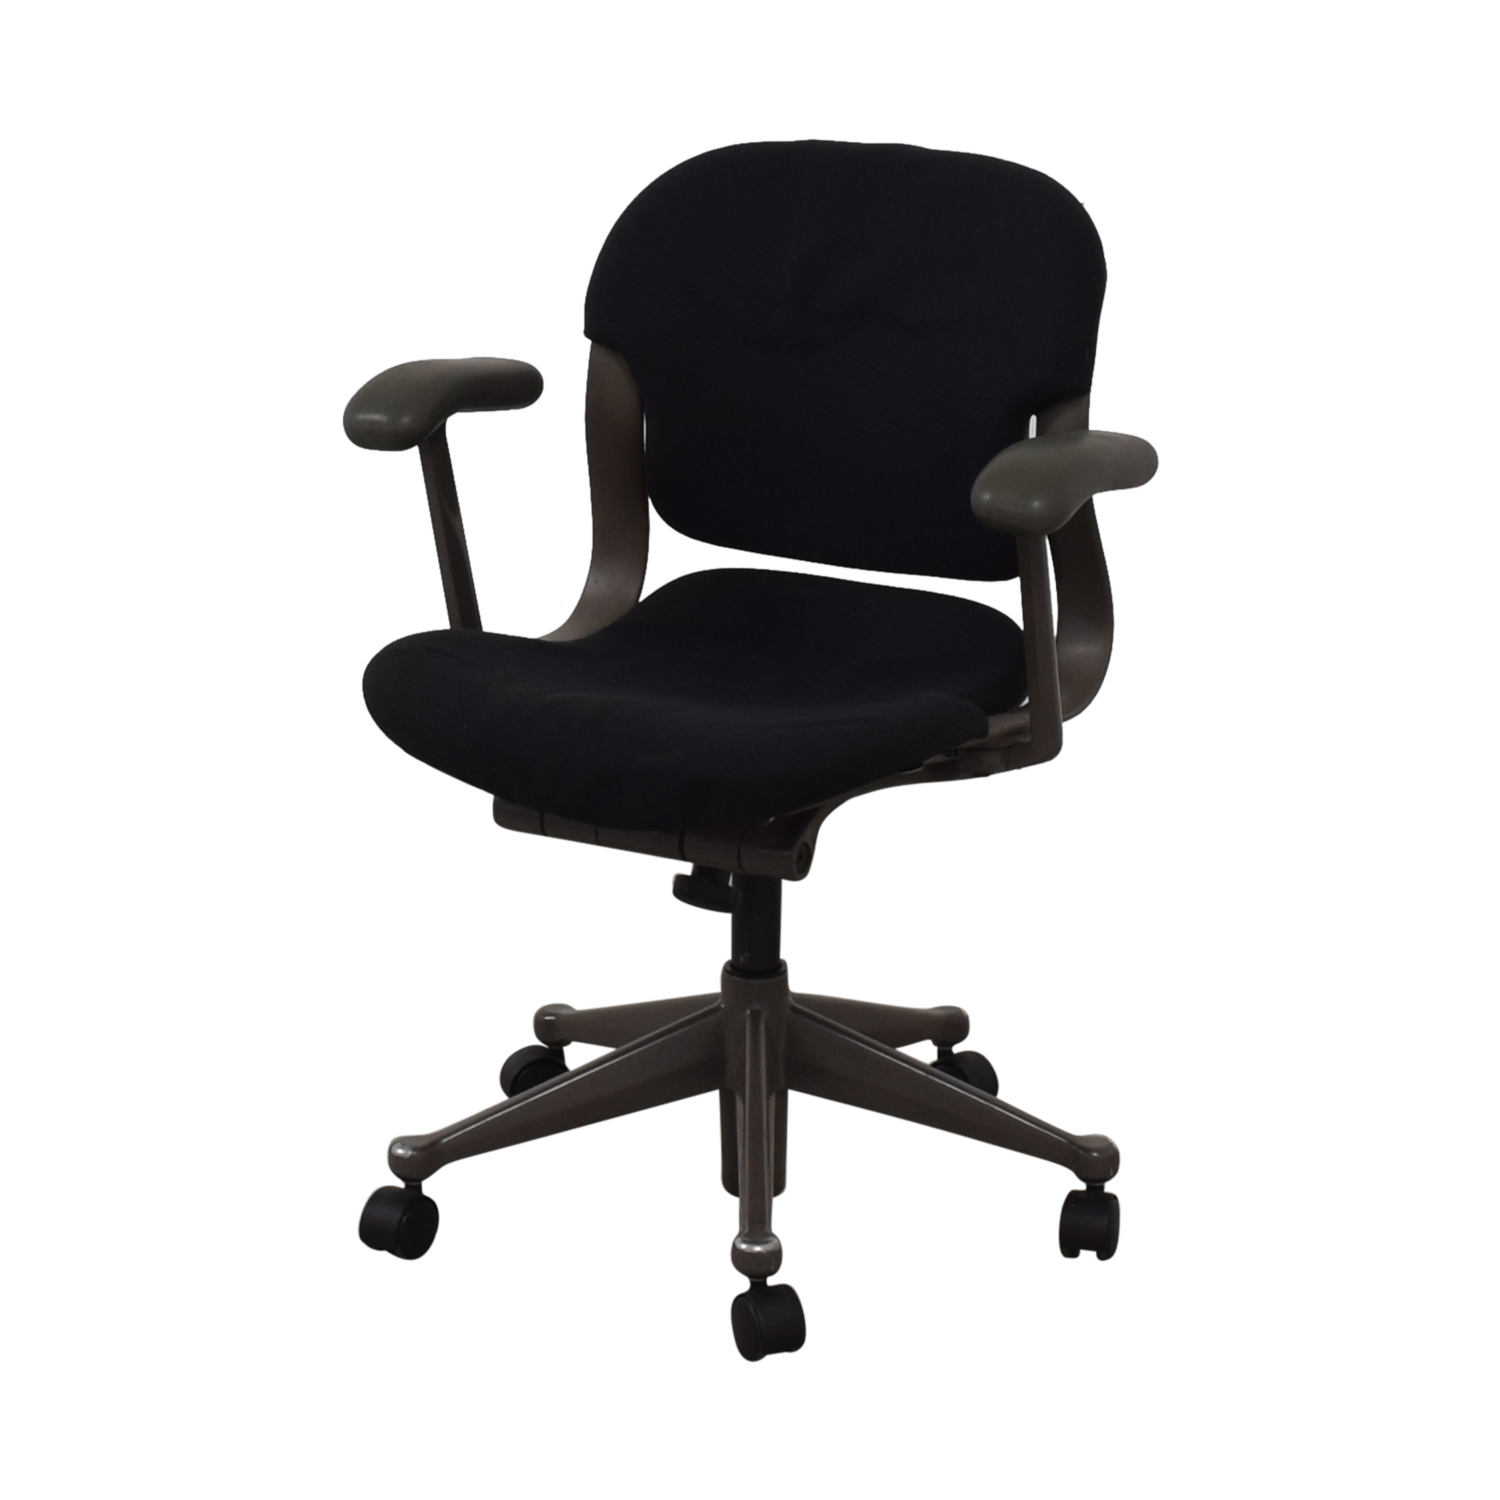 Black Full Mesh Office Chair / Chairs